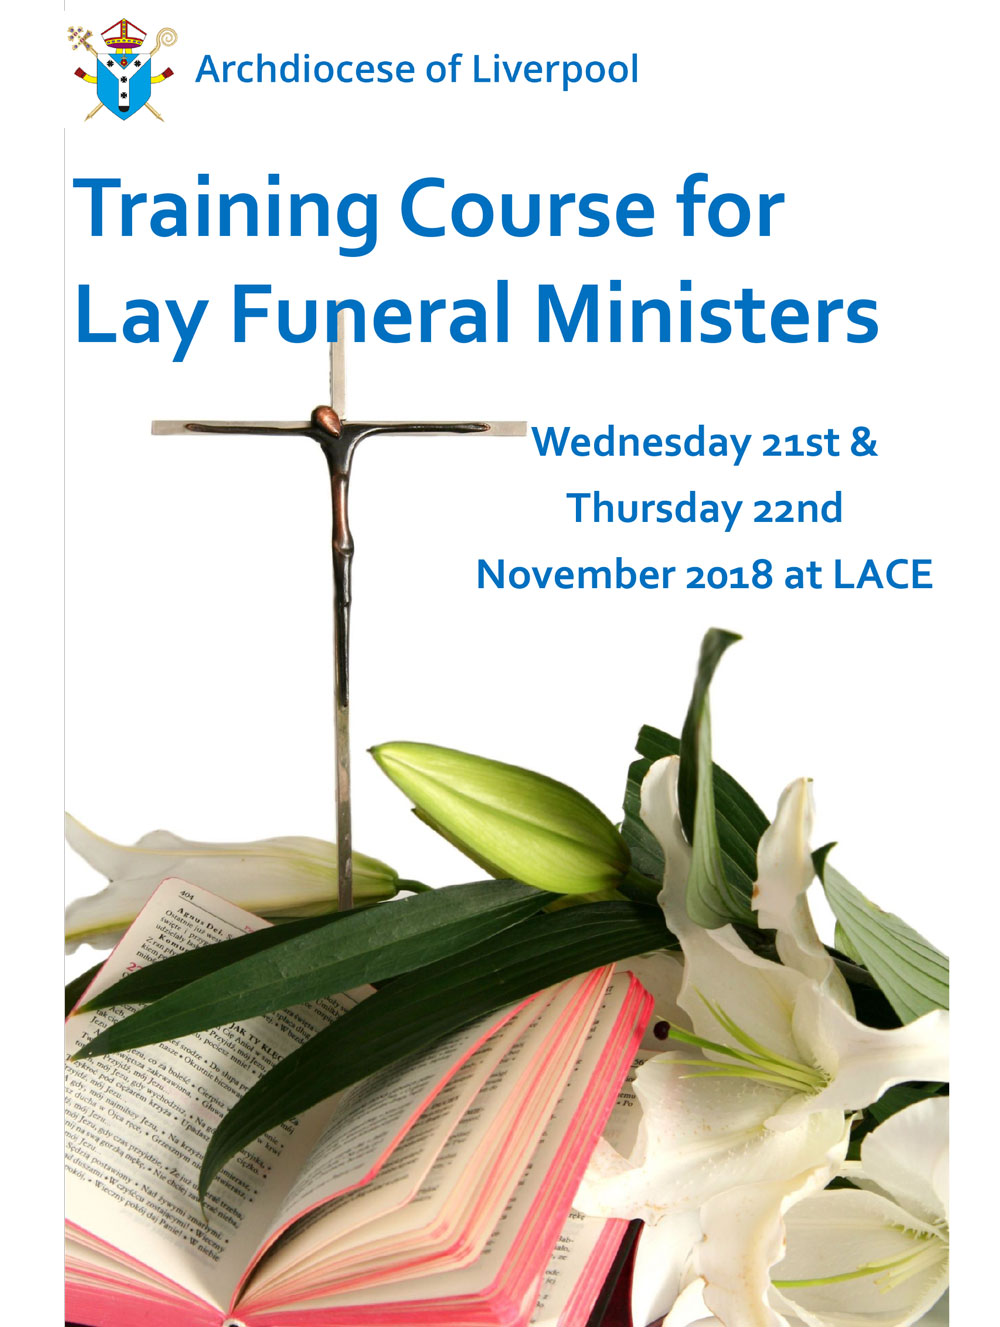 Lay Funeral Ministers Training